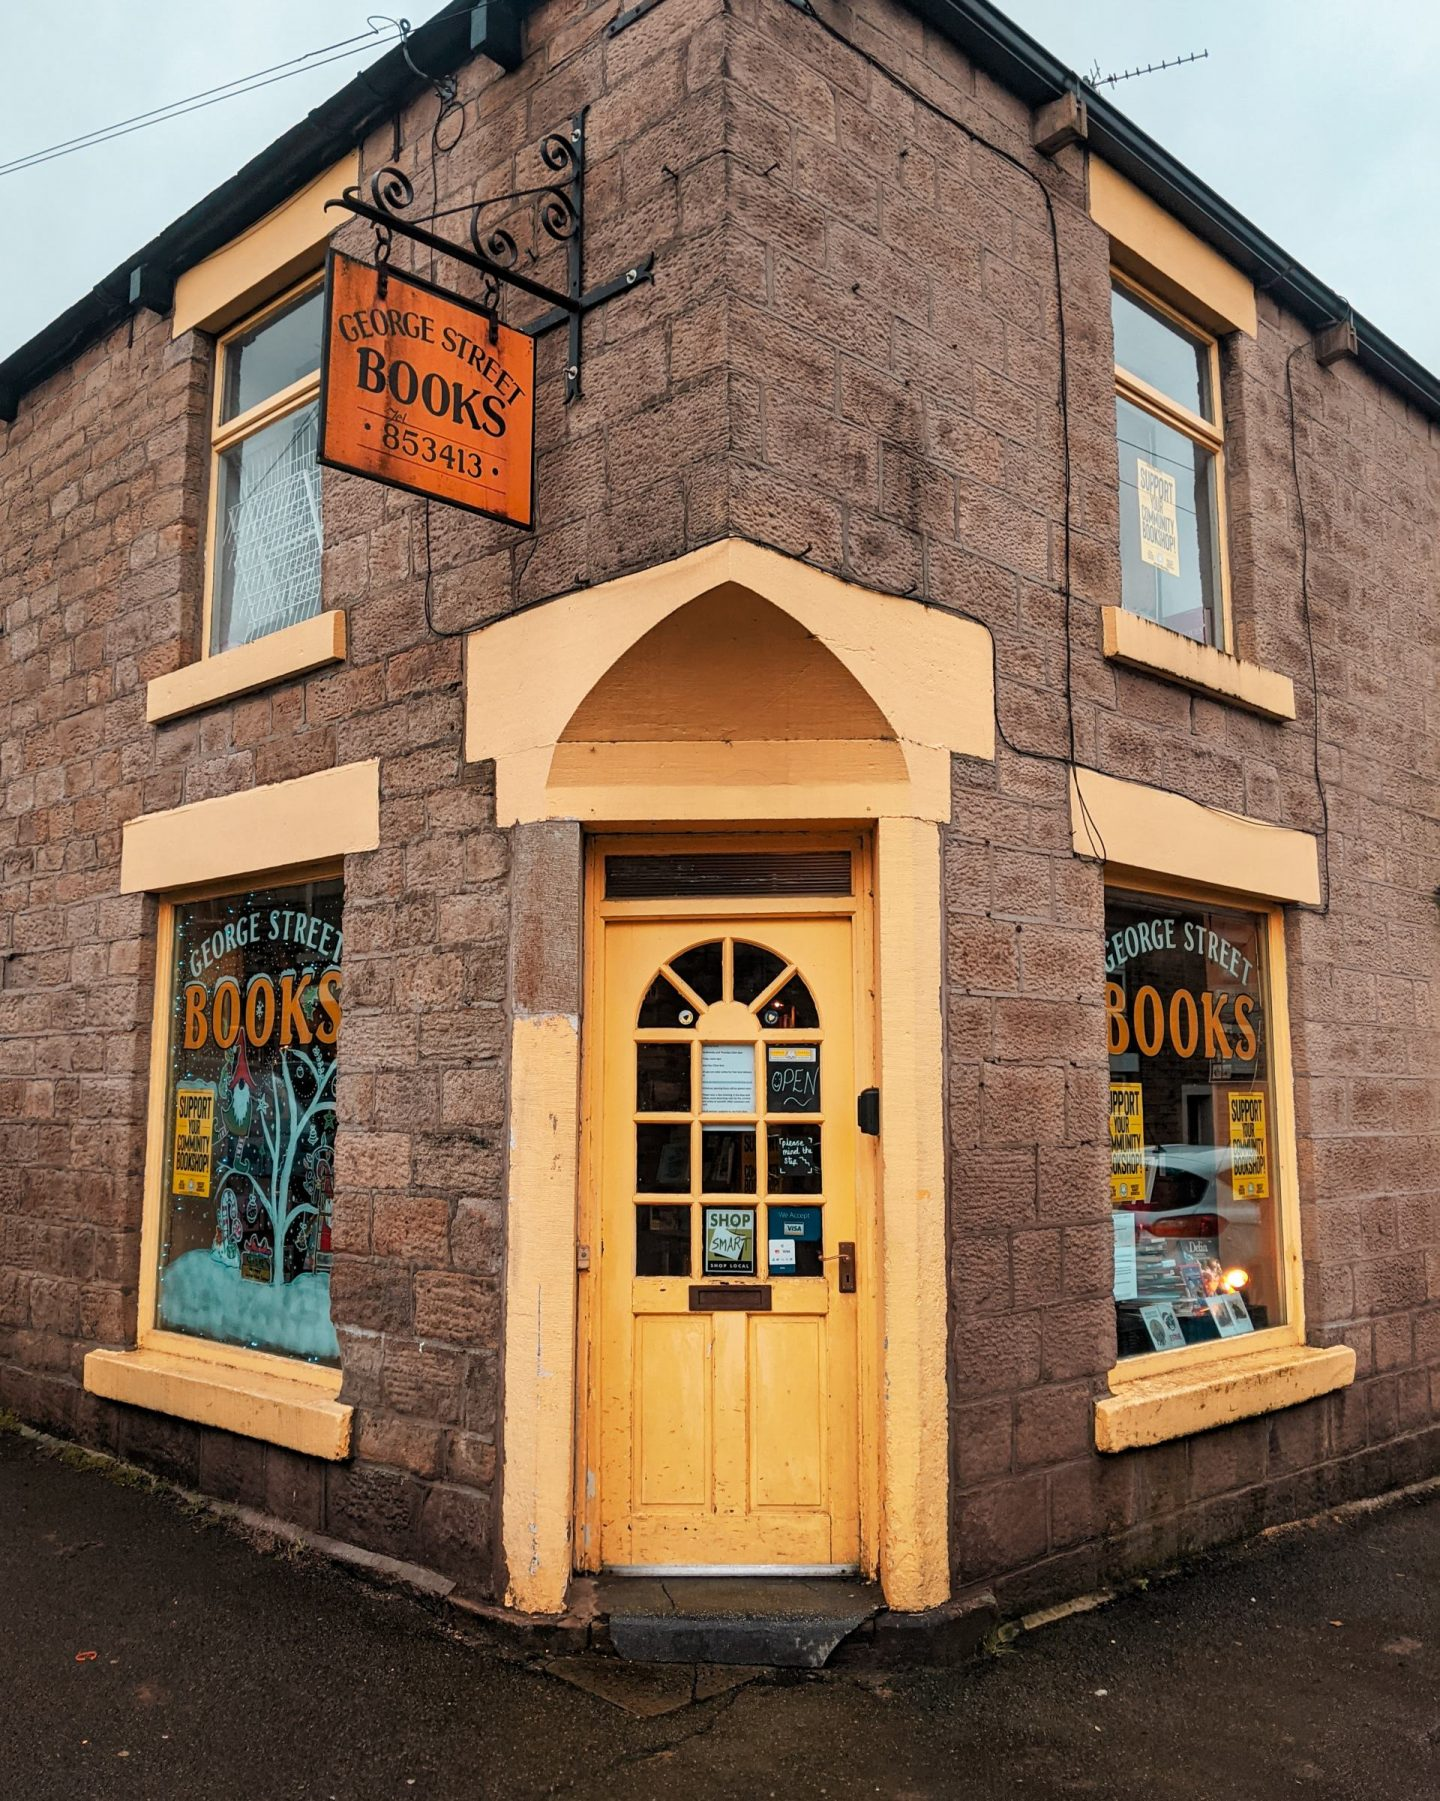 The front entrance of George Street Community Bookshop in Glossop. The building has a yellow front door and yellow window frames.